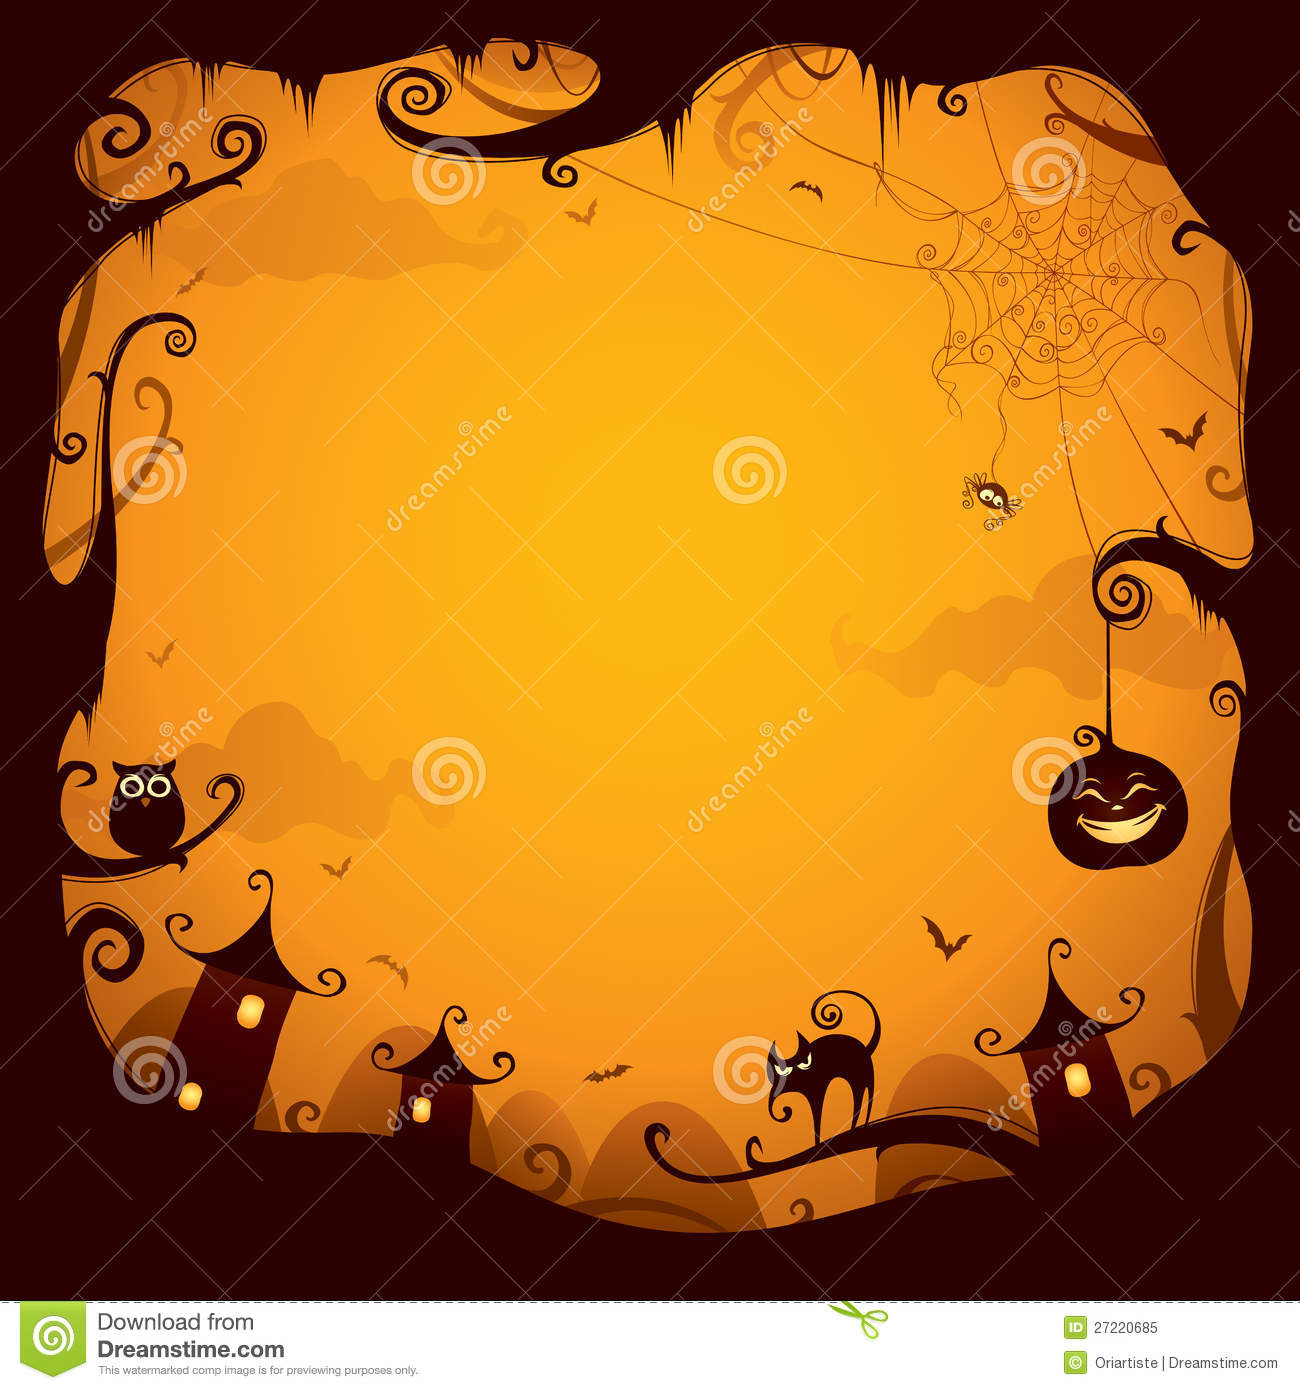 Halloween Border For Design Royalty Free Stock Photo - Image: 27220685